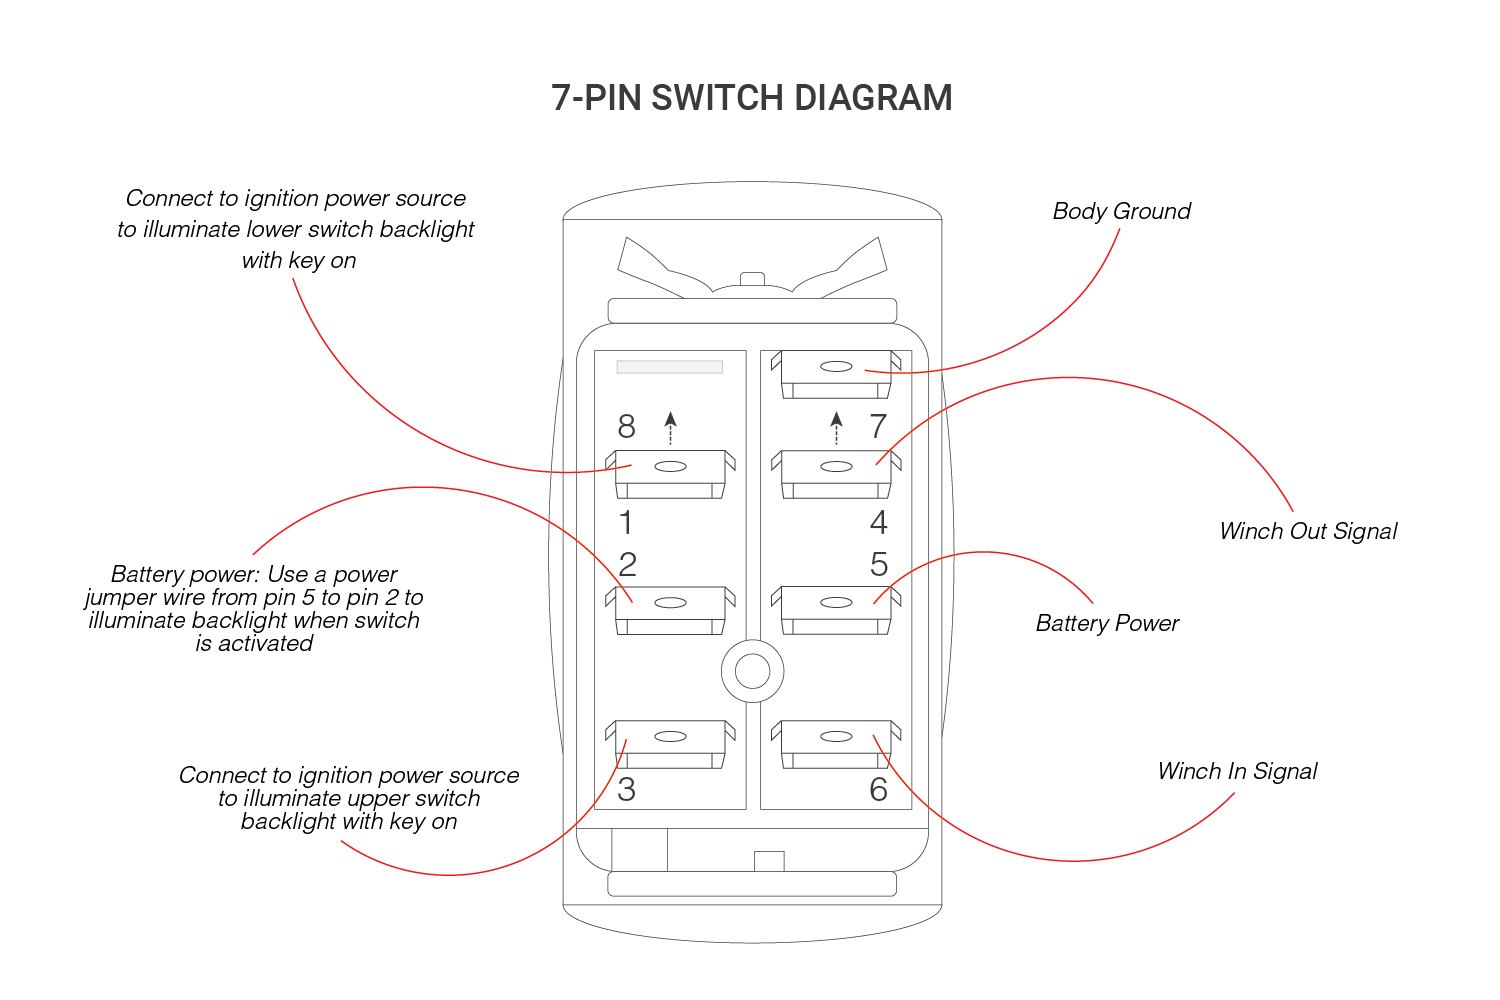 Winch Rocker Switch Wiring Diagram -Free Download Inf 1 2 Wiring Diagrams |  Begeboy Wiring Diagram Source | Winch Rocker Switch Wiring Diagram |  | Begeboy Wiring Diagram Source